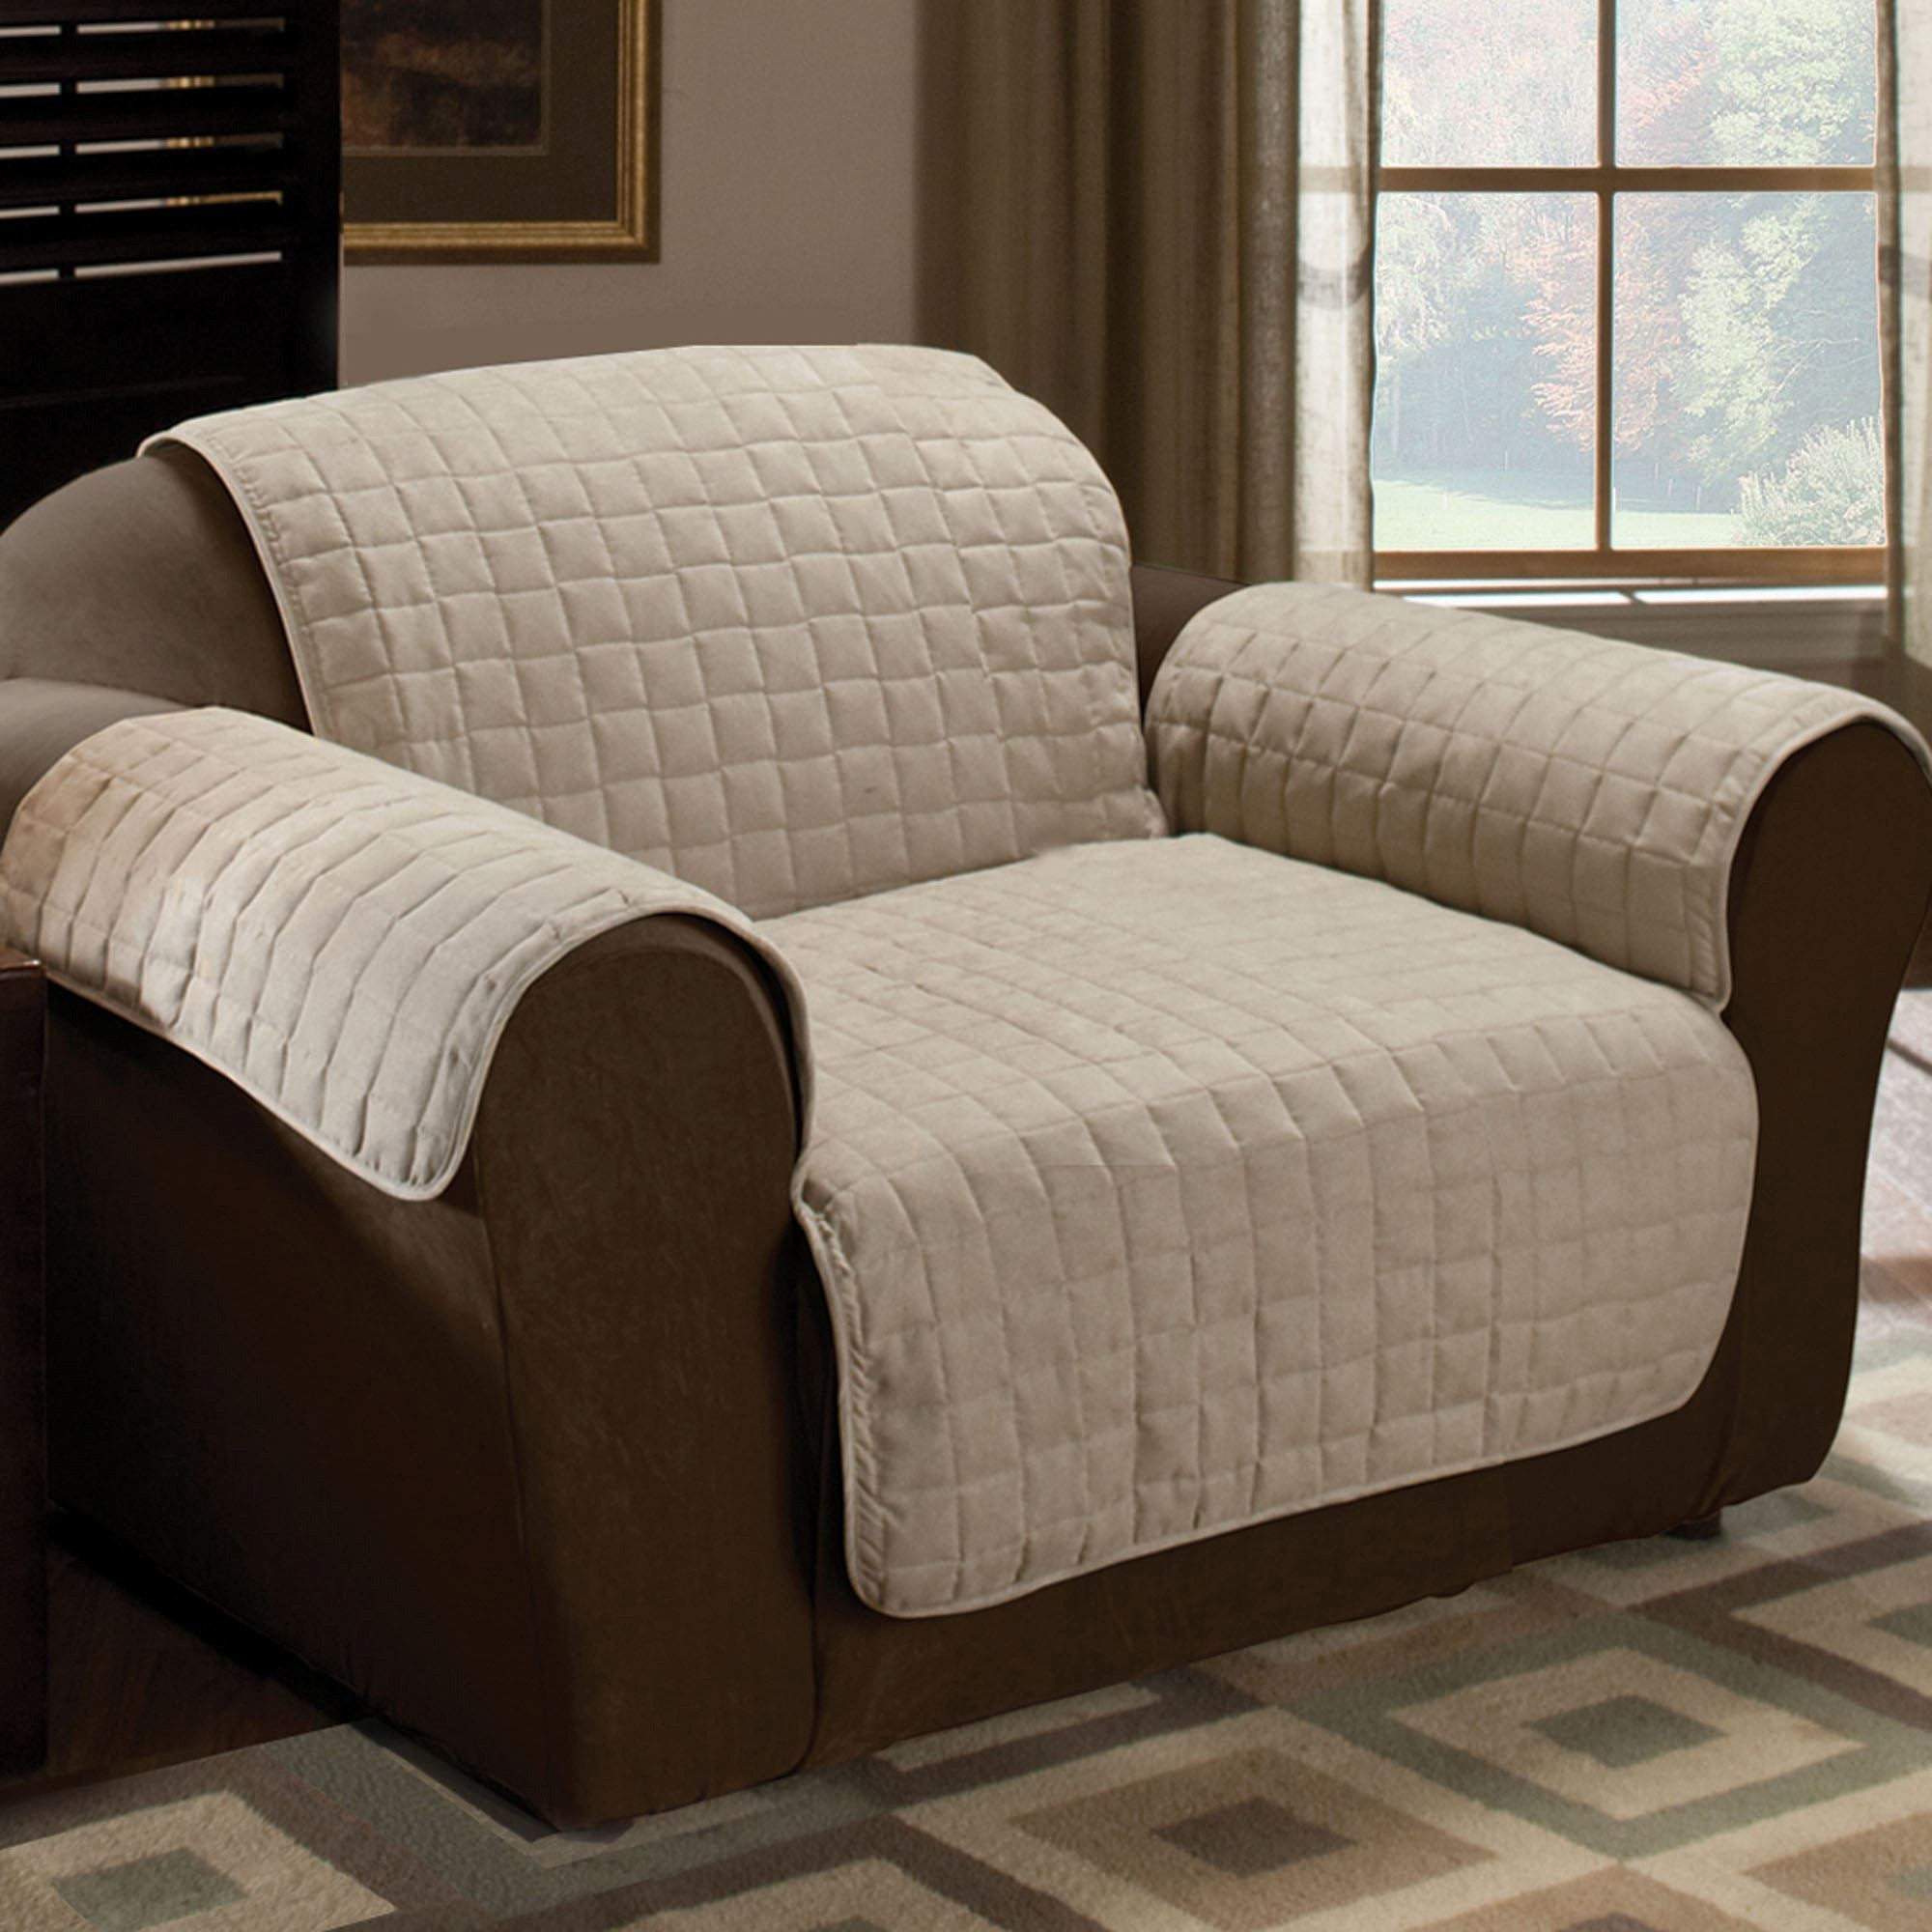 Sofa Chair Covers Fresh Couch and Loveseat Covers Inexpensive Home Refurbishing Blogbeen Wallpaper